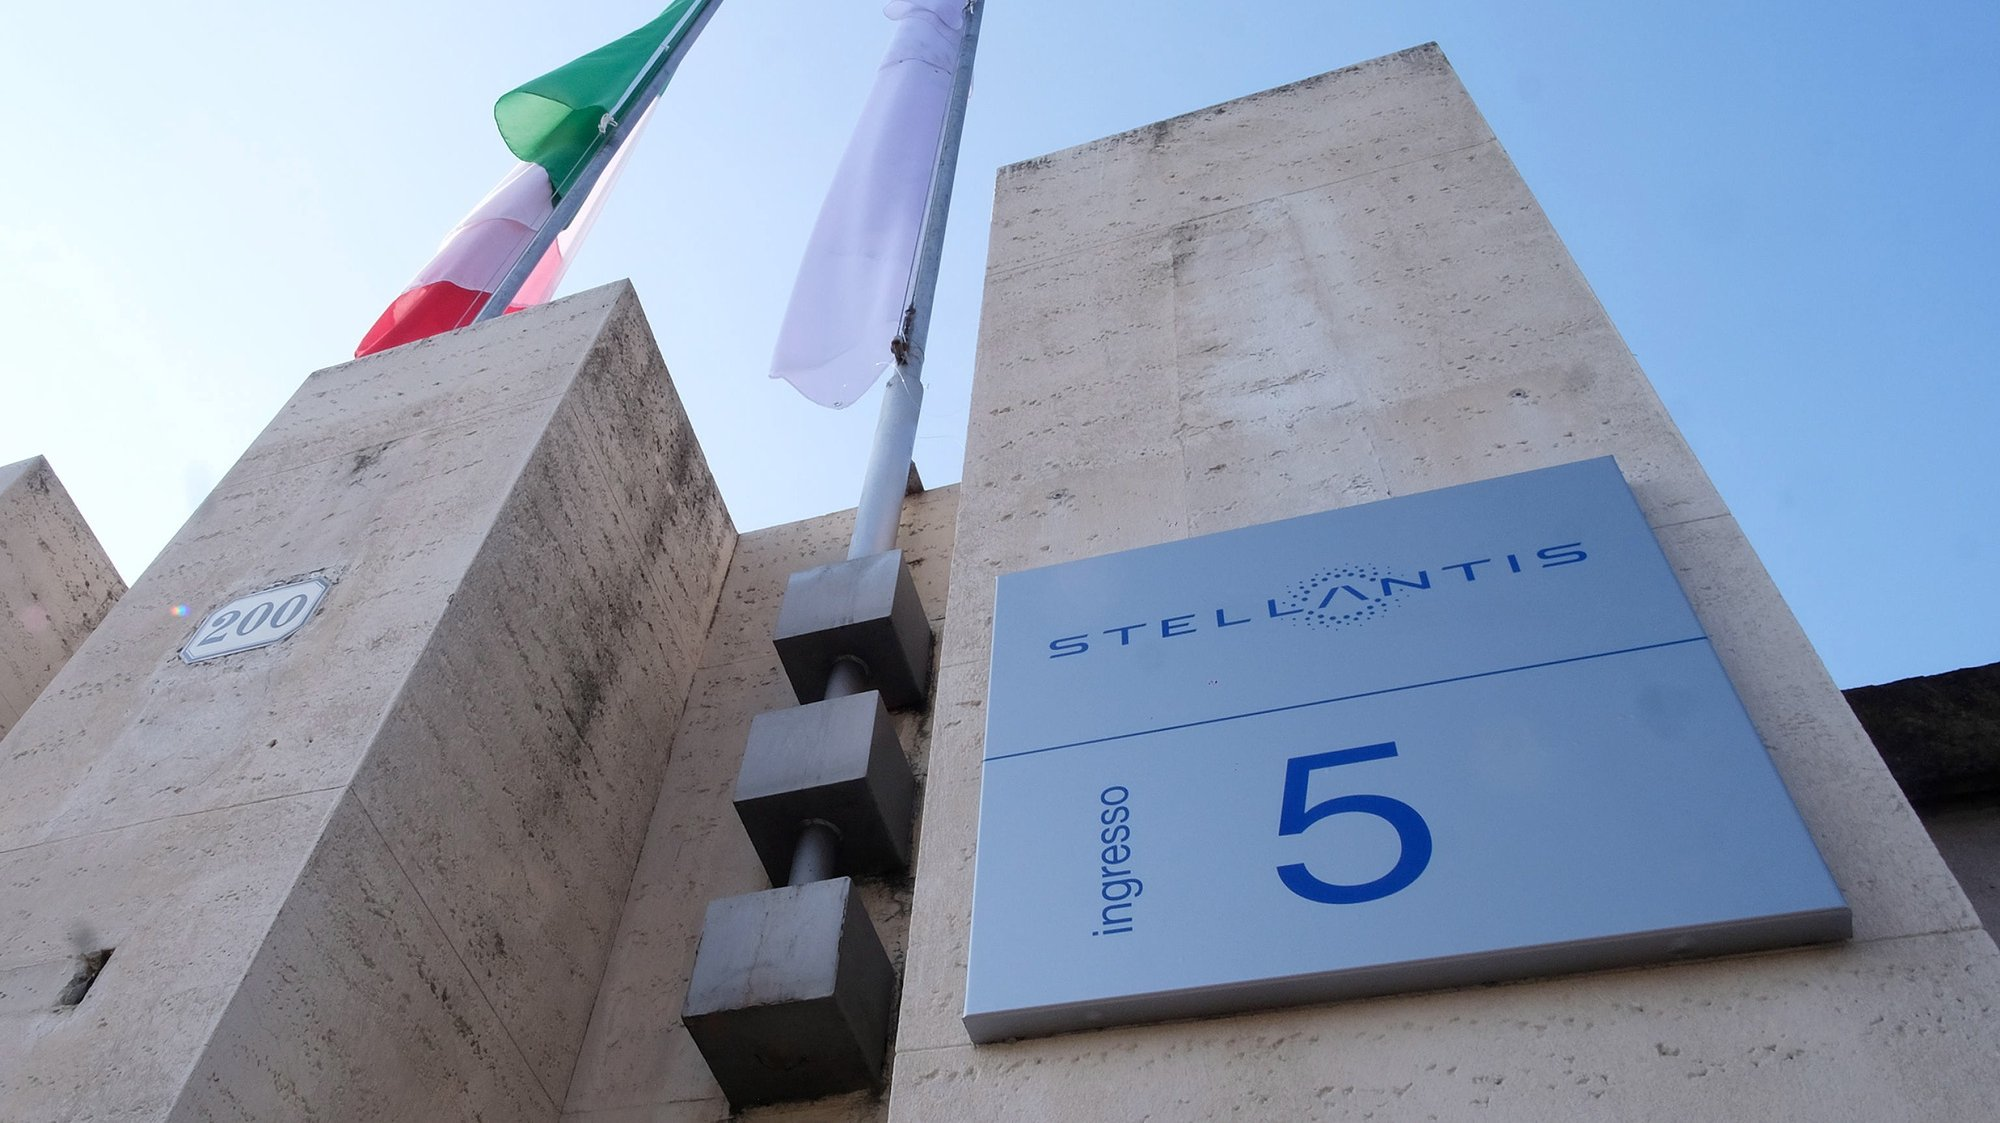 """epa08943875 The """"Stellantis"""" sign posted at the main entrance of the Fiat Mirafiori building in Turin, Italy, 17 January 2021. Fiat-Chrysler (FCA) and Groupe PSA sealed a 38 billion US dollar merger on 16 January 2021 to create Stellantis, the world's fourth-largest auto group.  EPA/ALESSANDRO DI MARCO"""